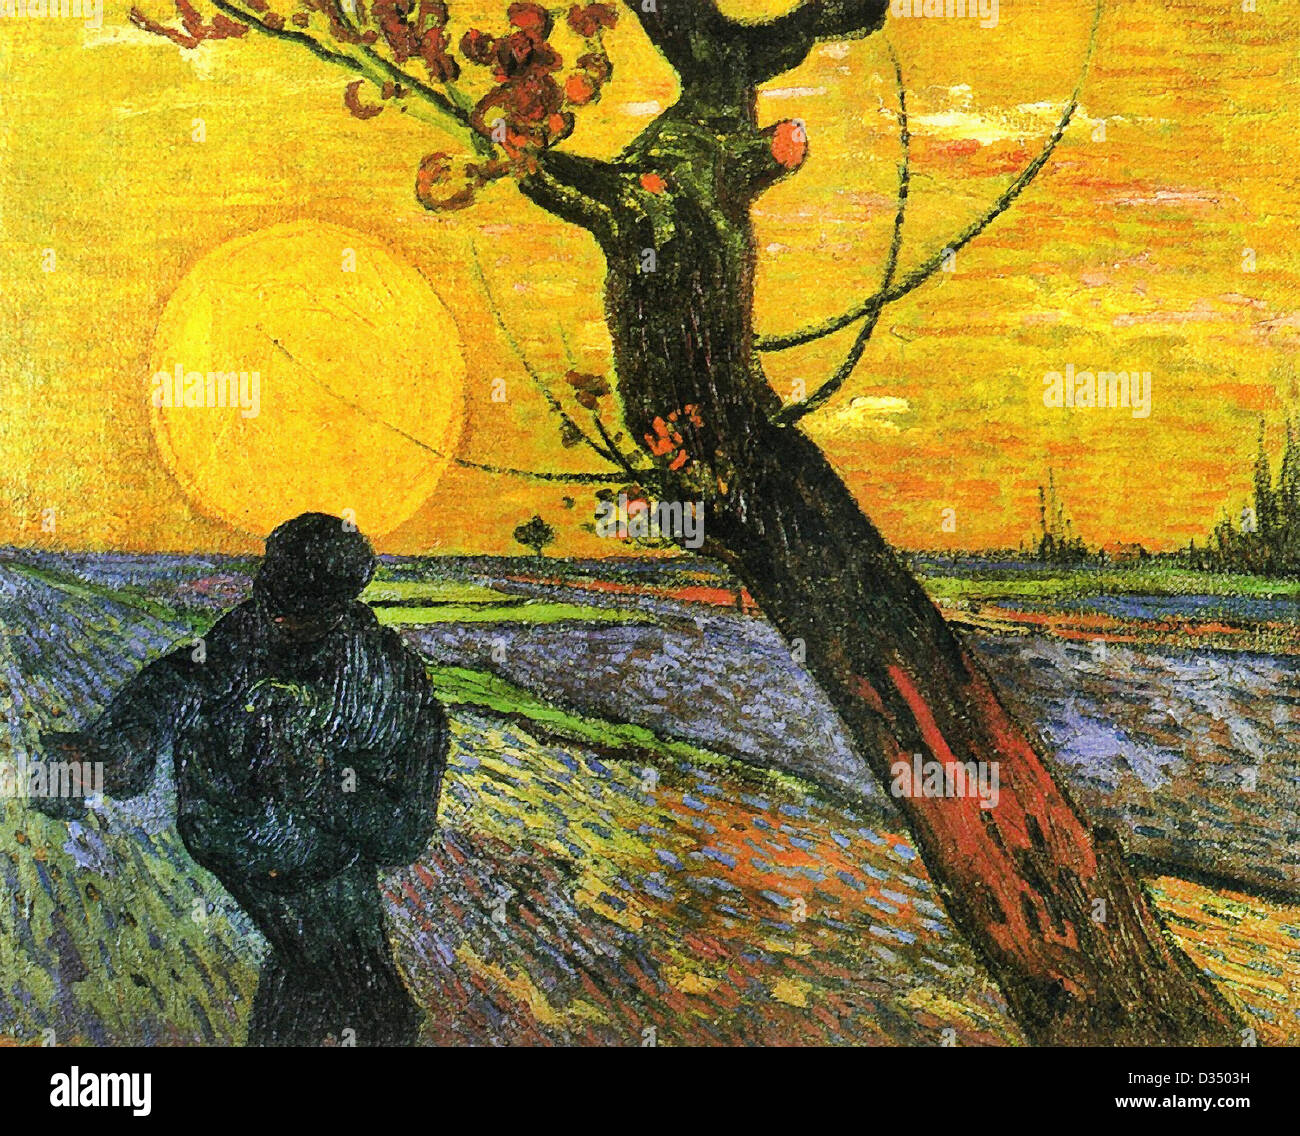 The sower and setting sun